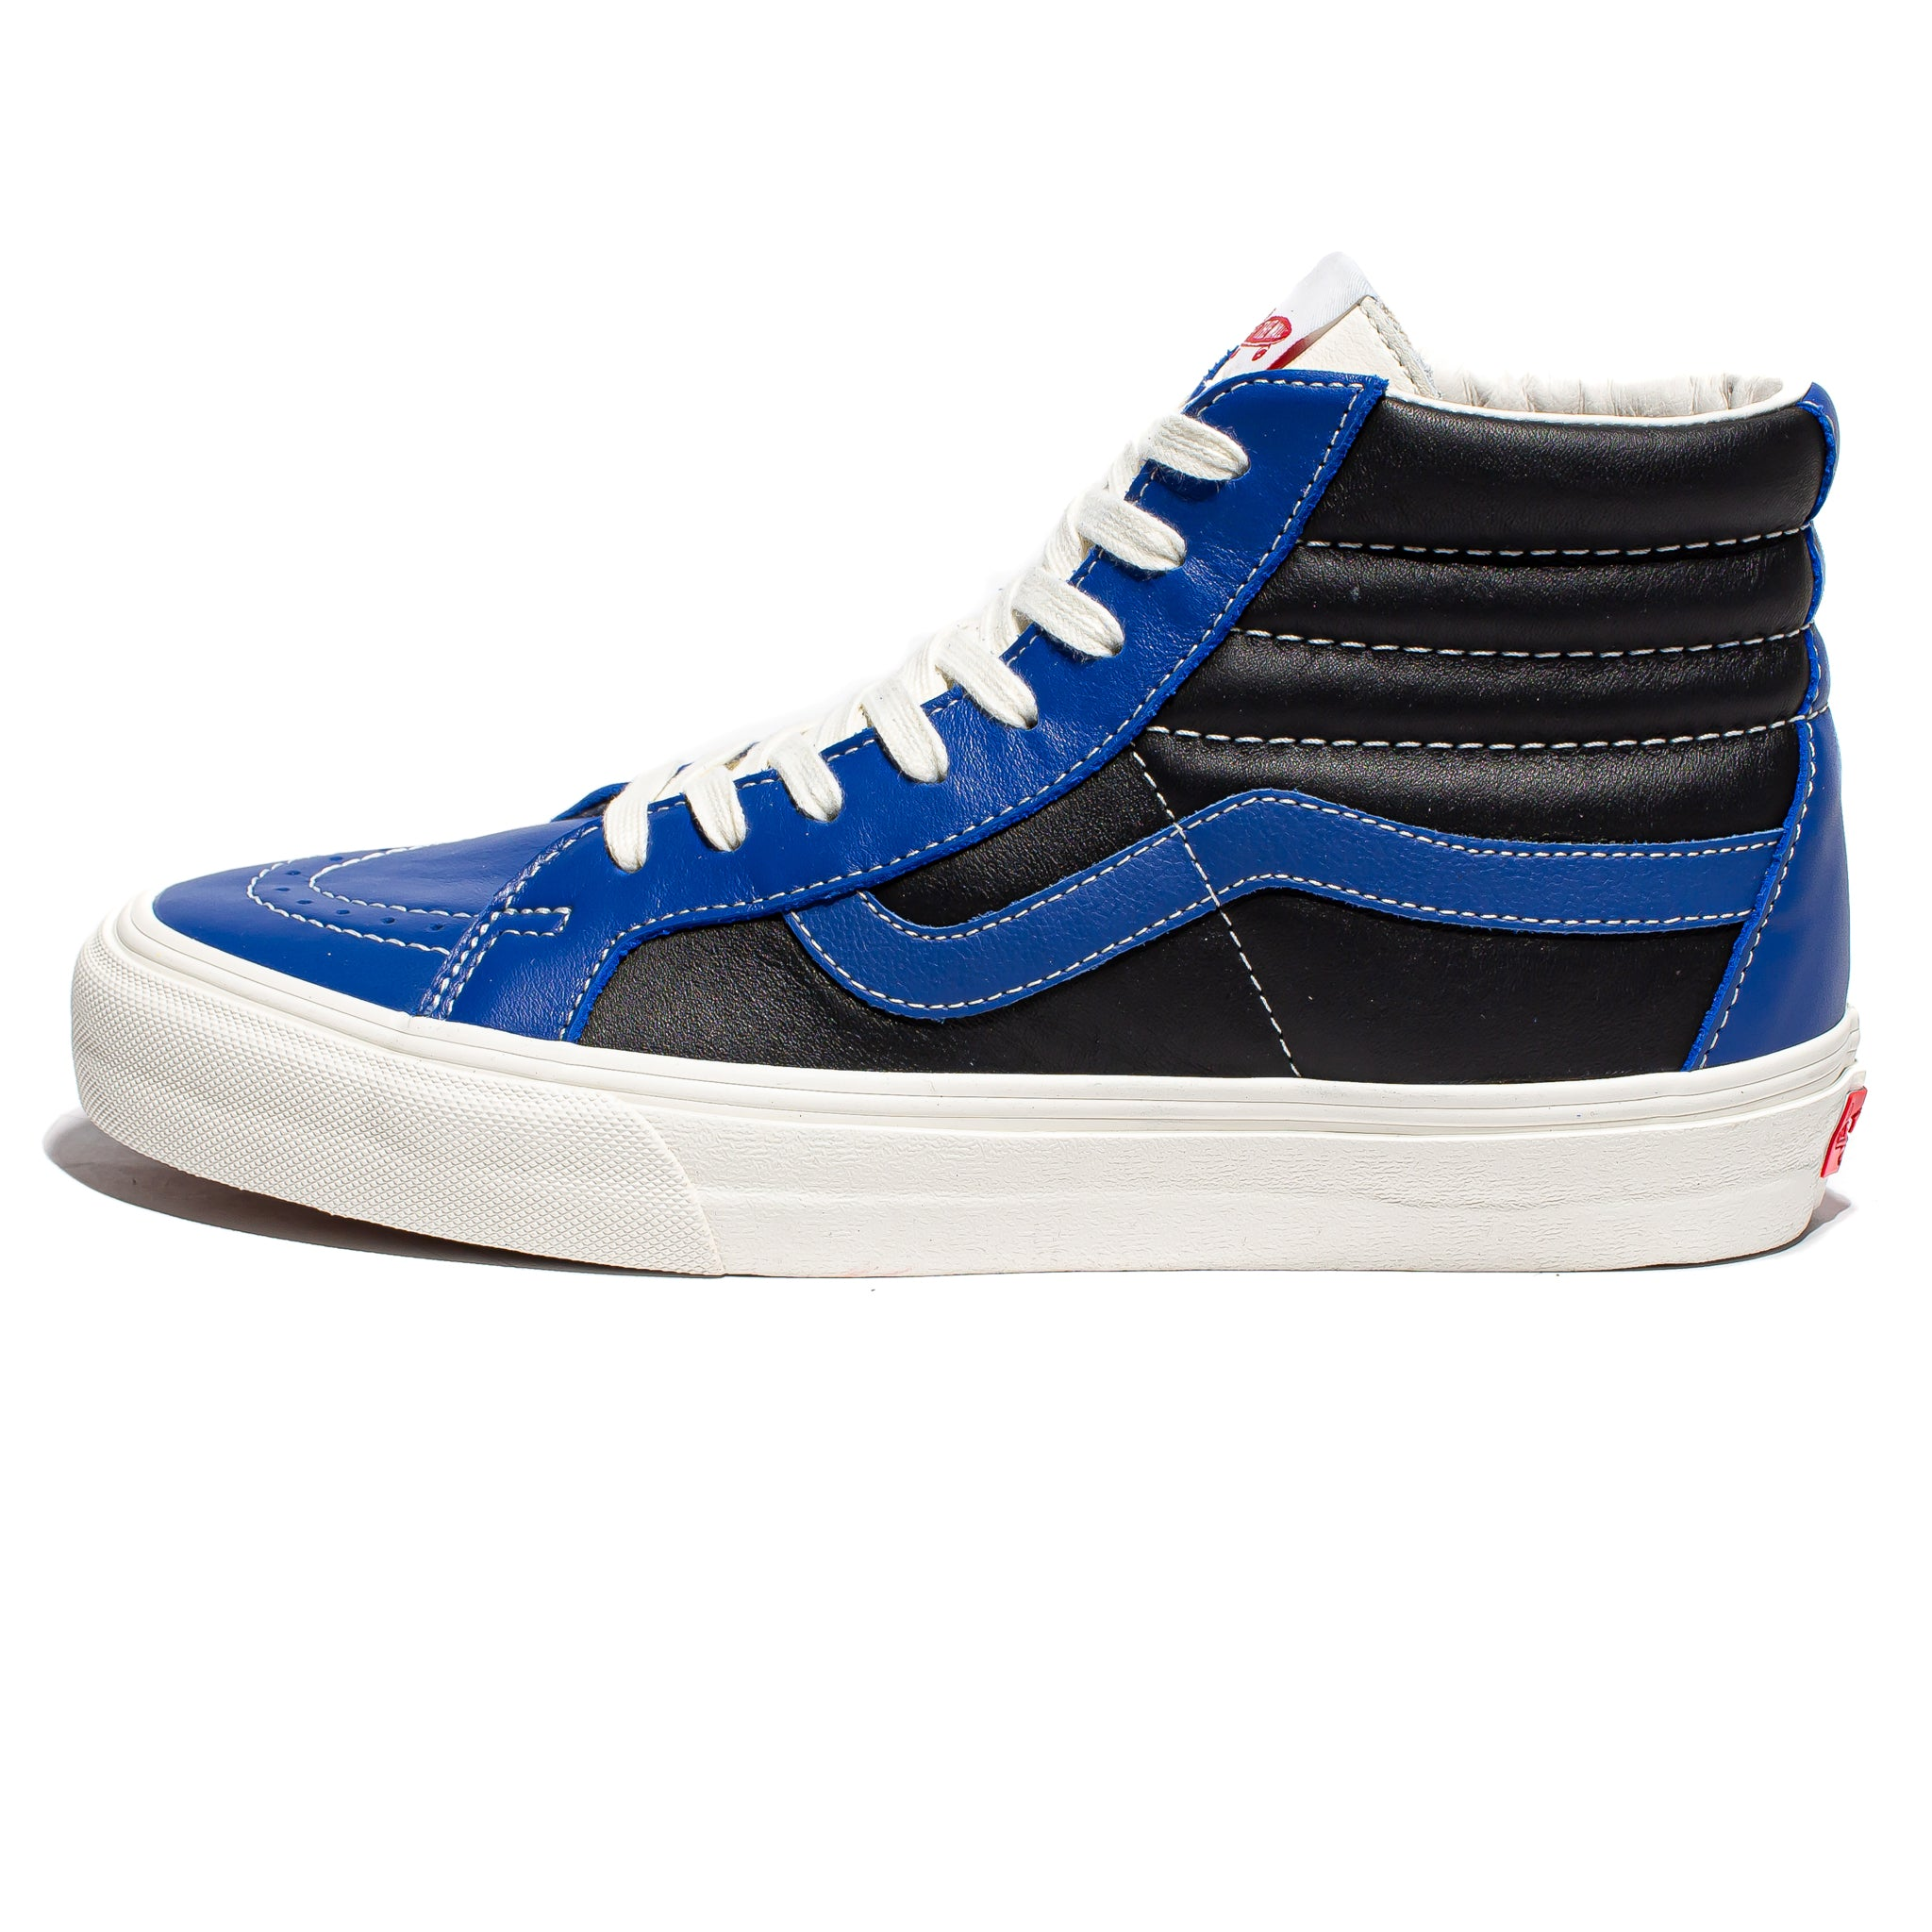 Vans Vault SK8-HI Reissue VLT LX True Blue/Black